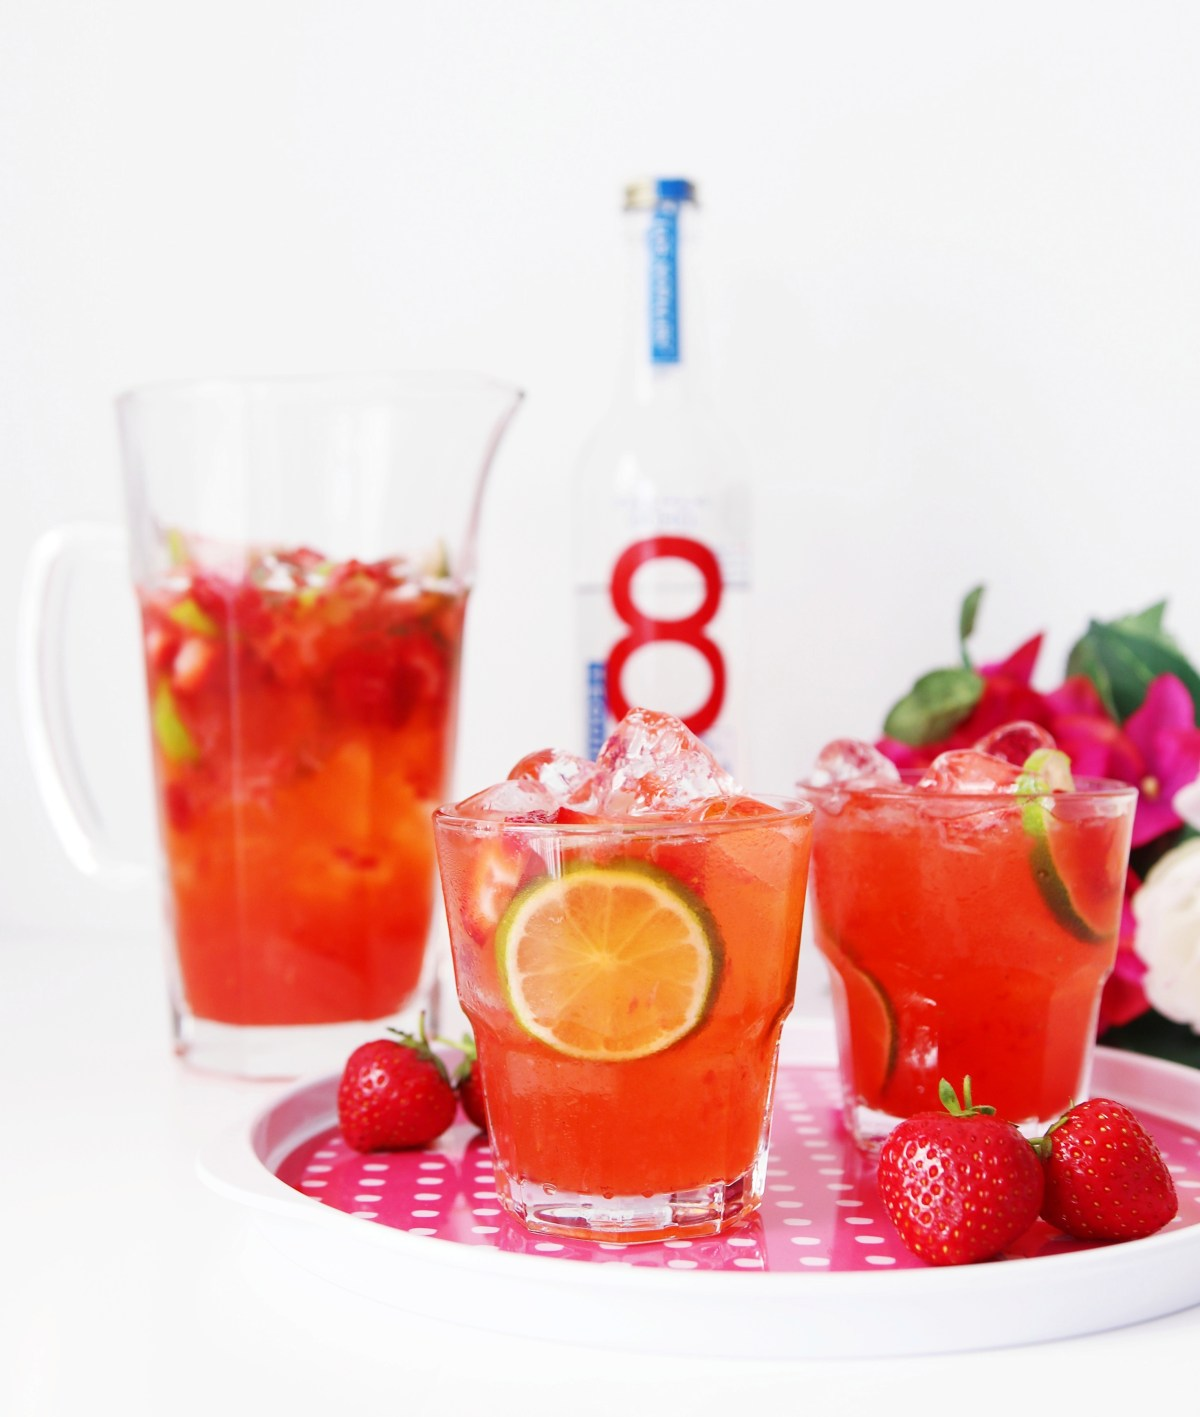 Strawberry Tequila Refresher Cocktail - Tequila Cocktail Recipe